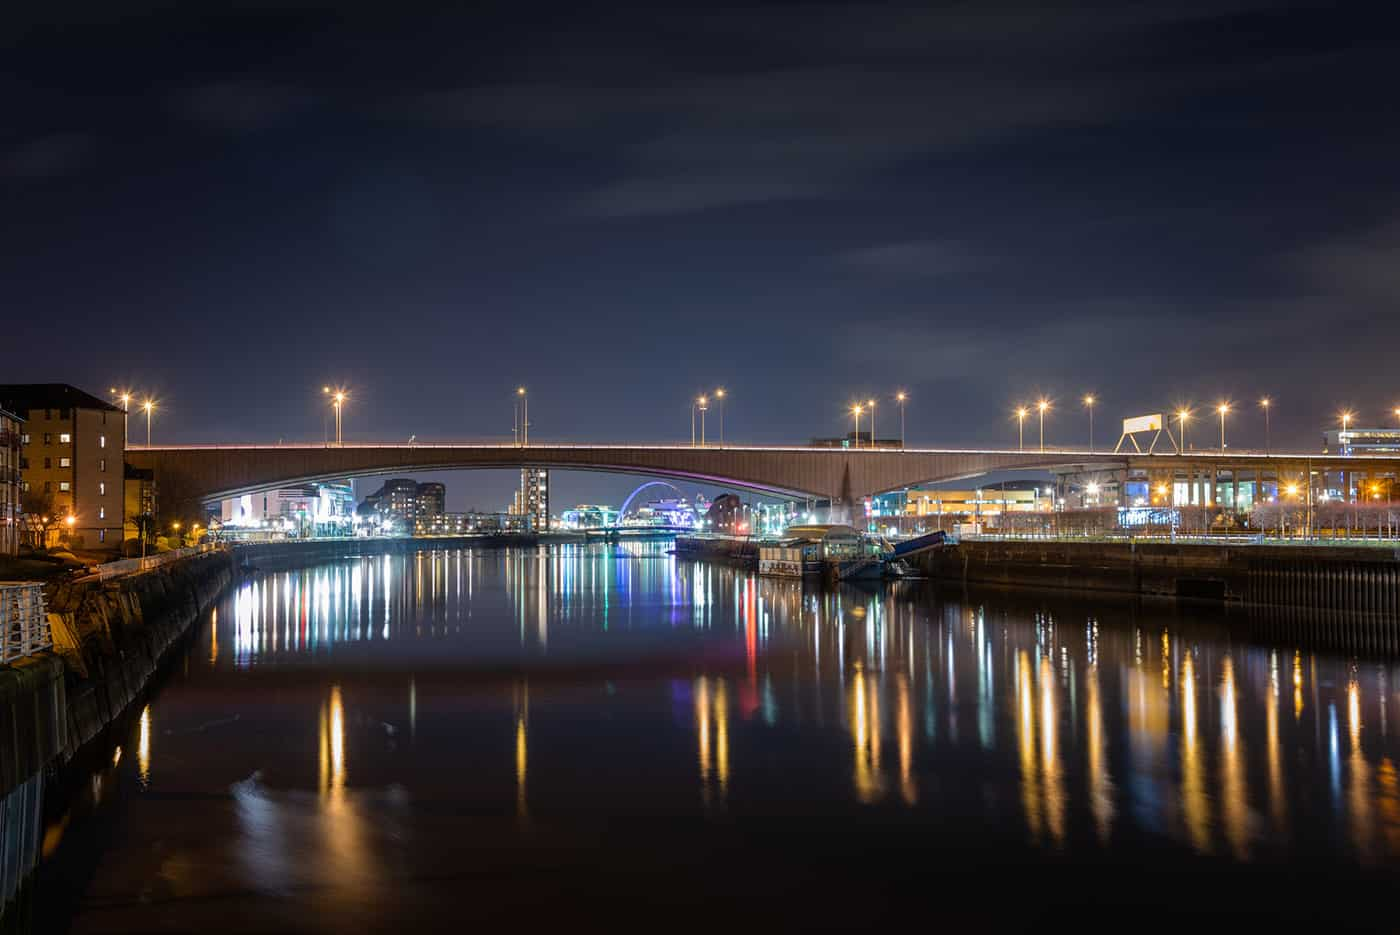 Motorway Bridge across the River Clyde in Glasgow City Centre at Night. Other Bridges Spannig the River are Visible in Background